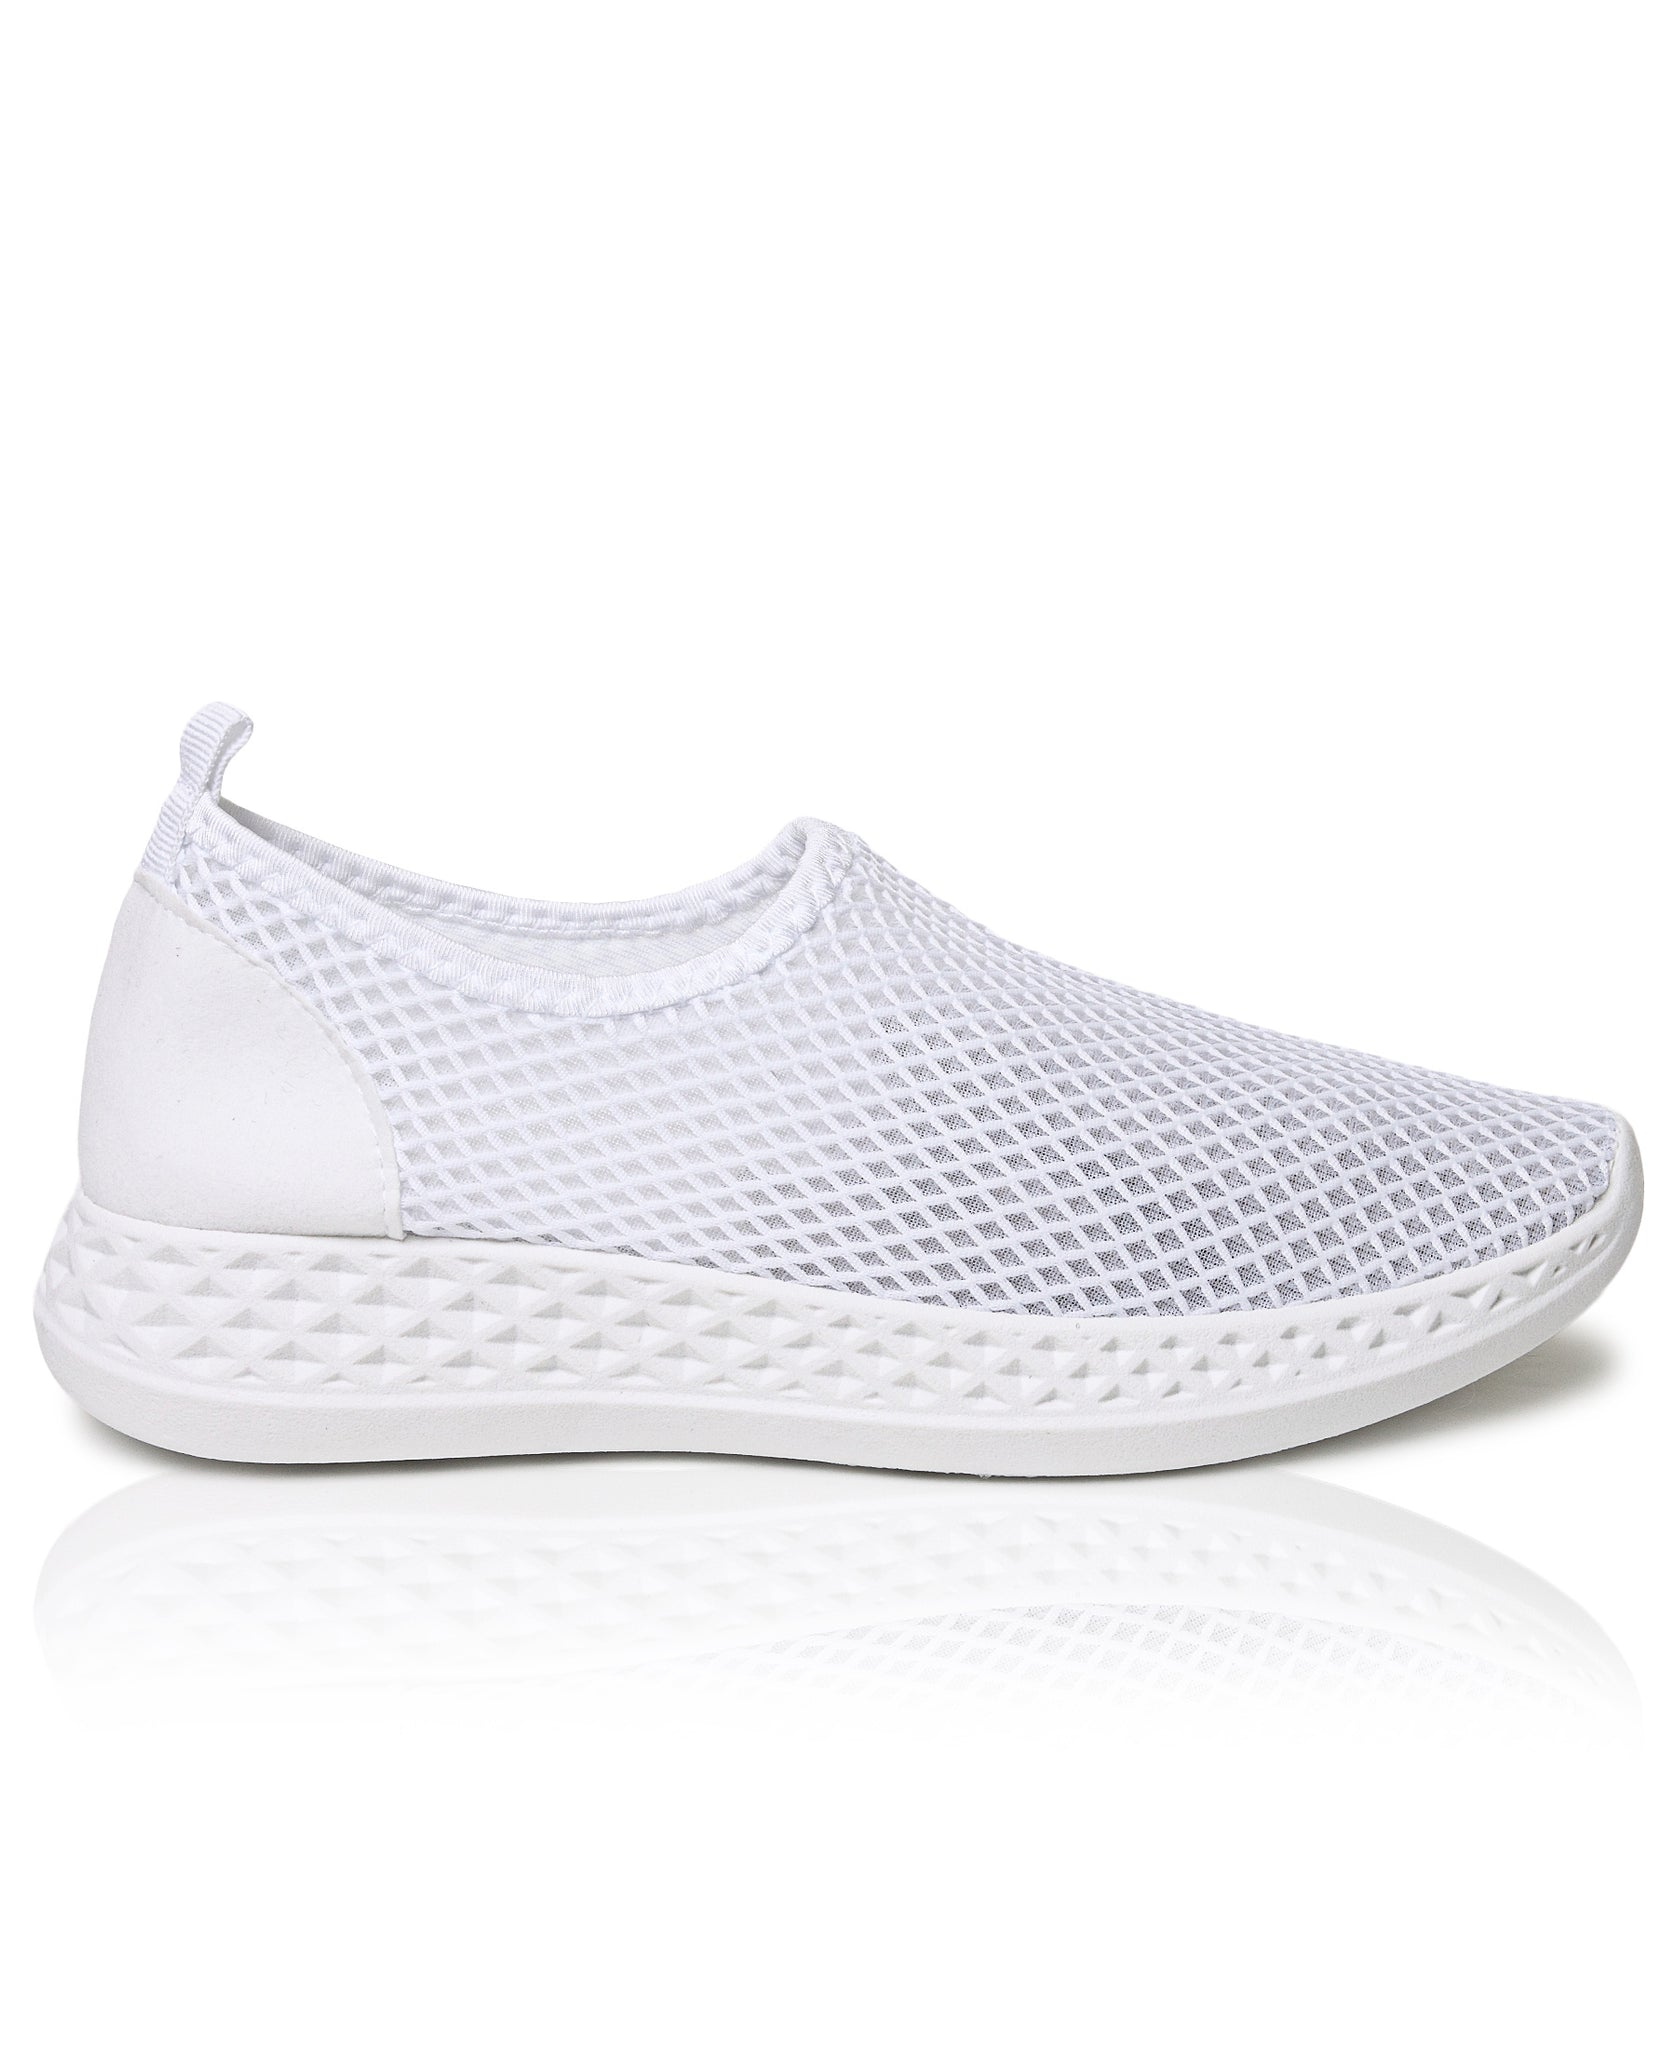 Ladies' Casual Sneakers - White